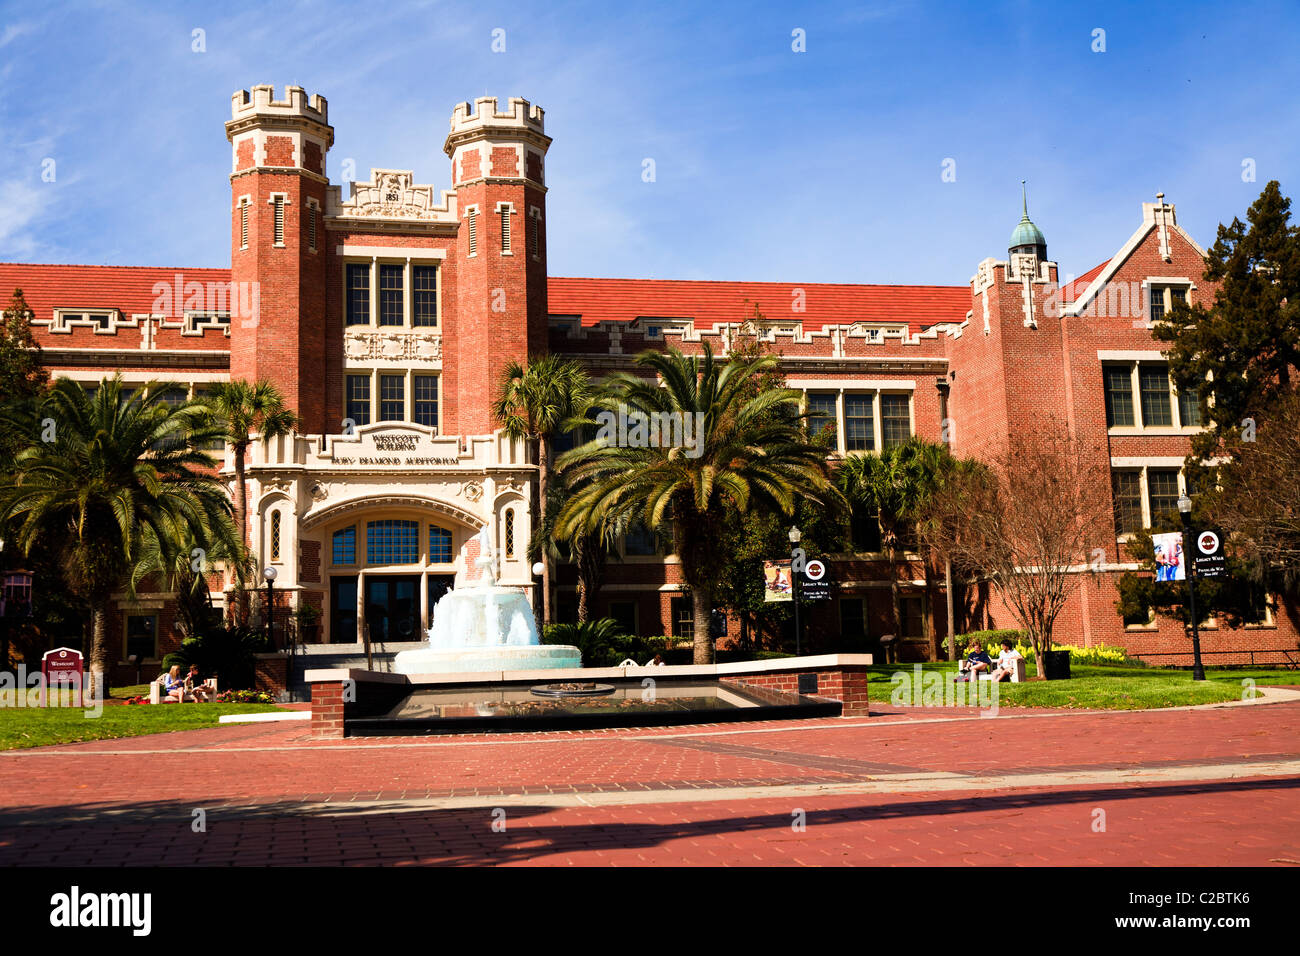 Westcott building of the Florida State University in Tallahassee, Florida, United States - Stock Image